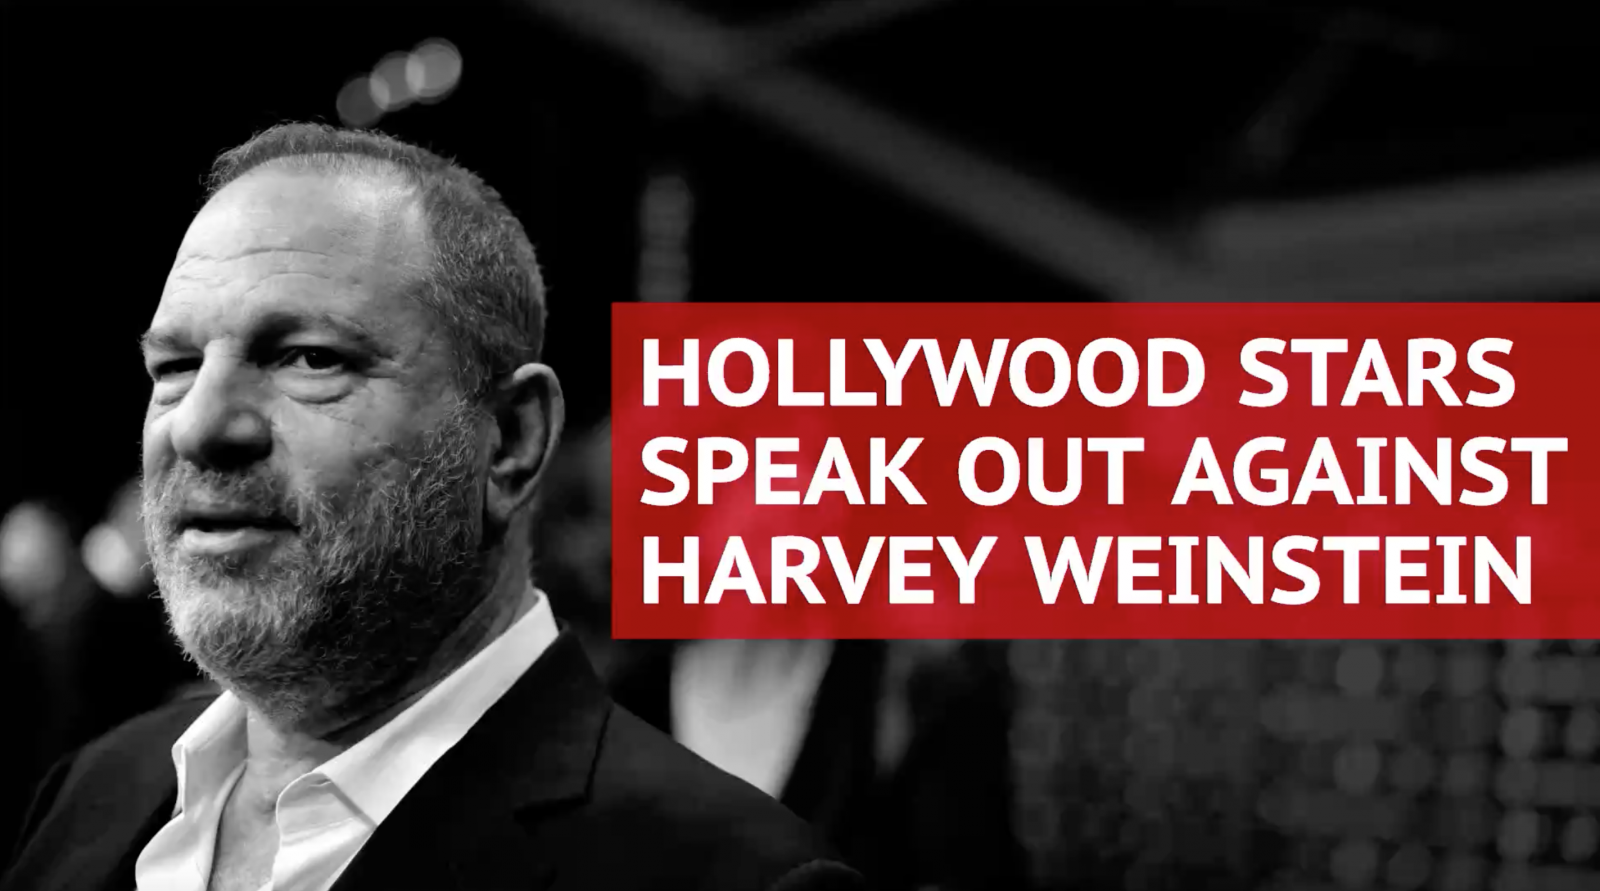 george-clooney-meryl-streep-to-jennifer-lawrence-hollywood-stars-speak-out-against-harvey-weinstein